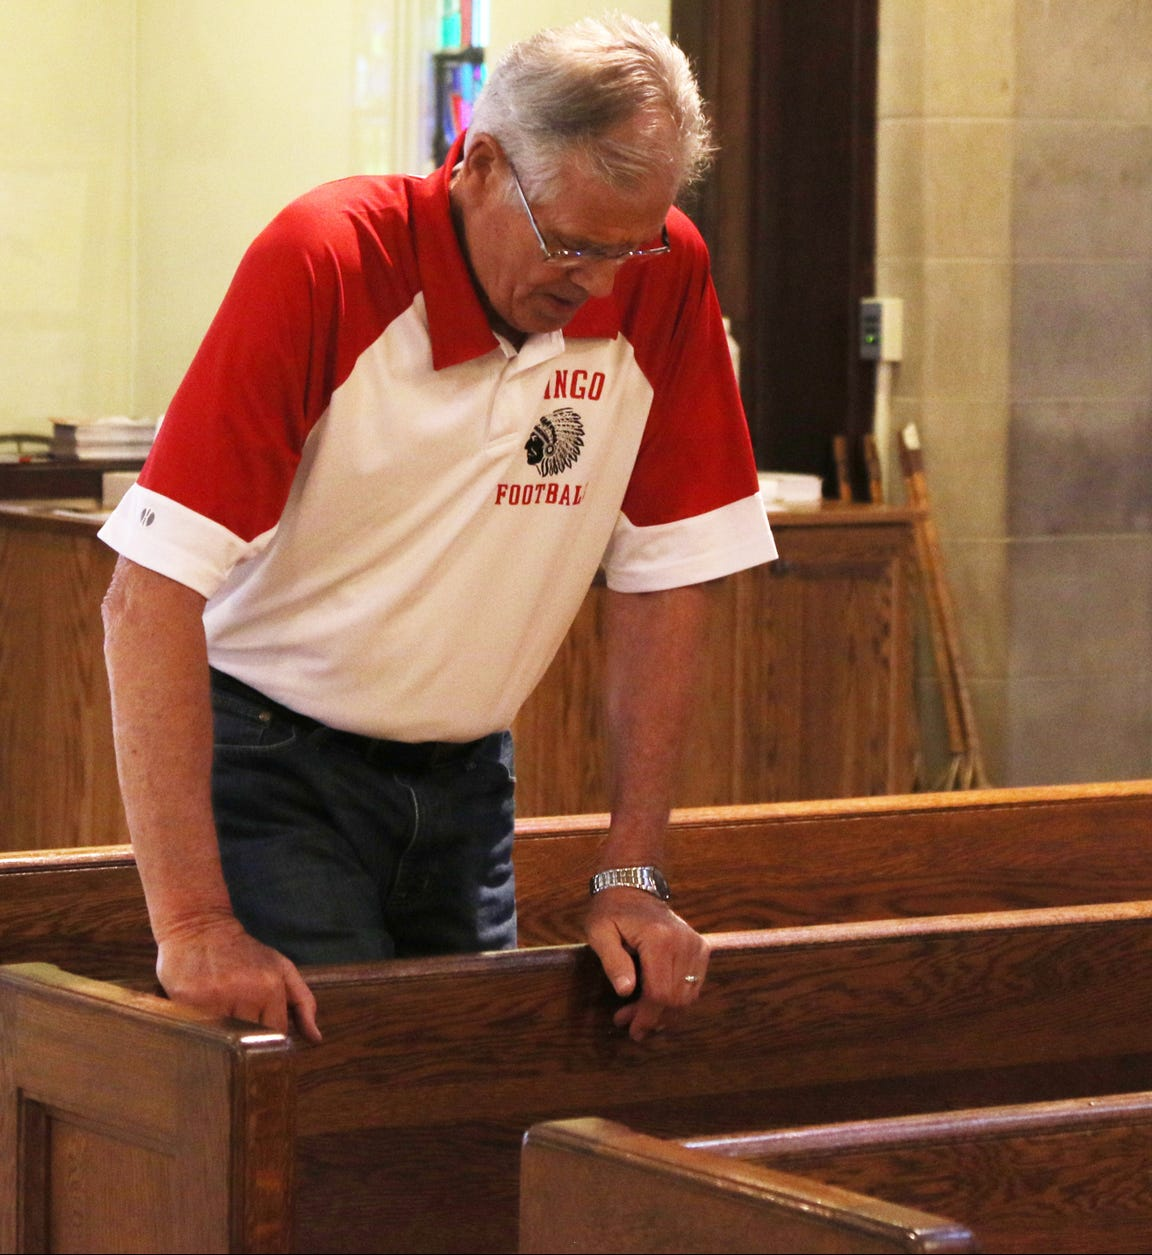 Michael Herrick begins most days by attending Mass at St. Agnes Church.